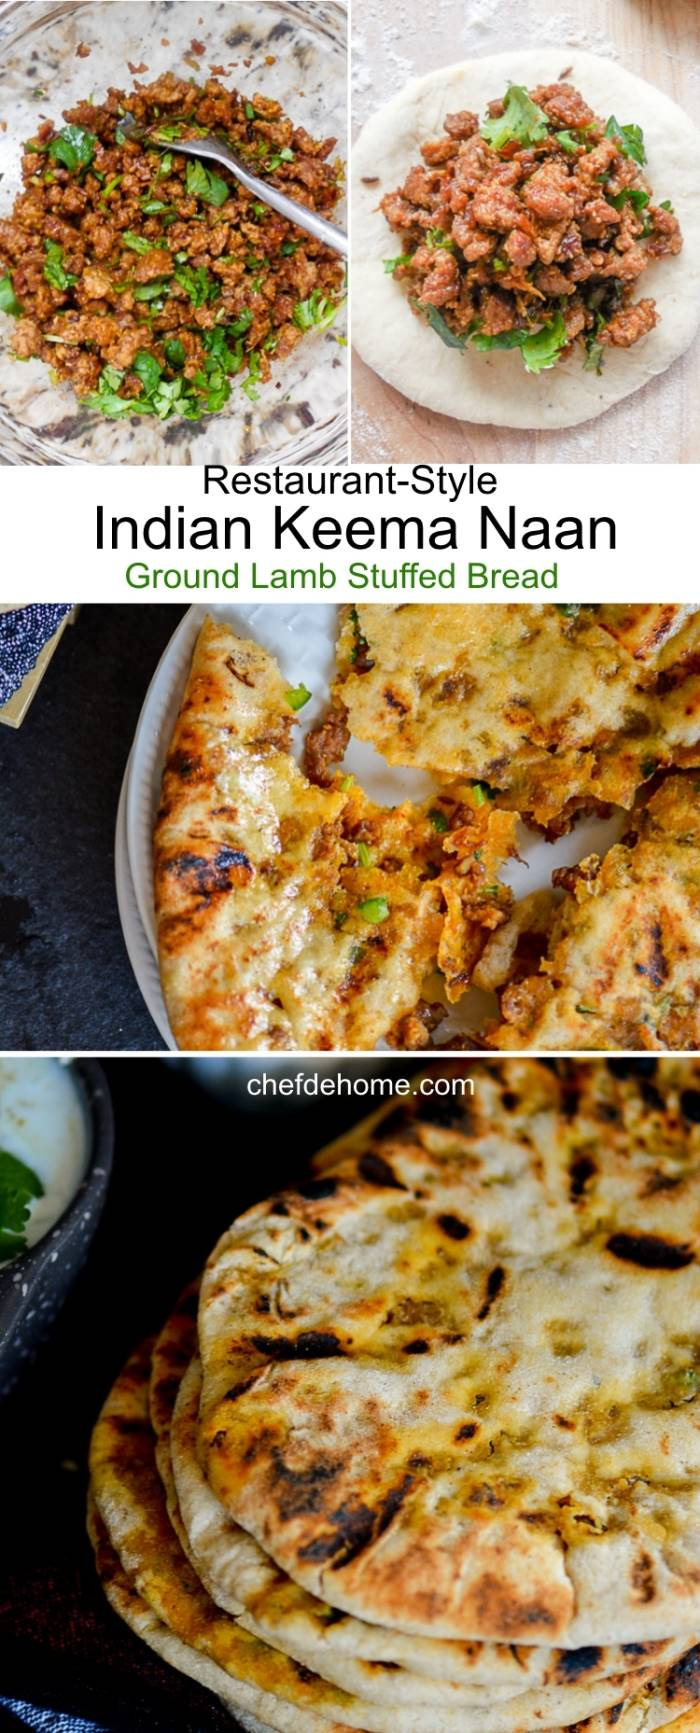 Indian Restaurant-Style Traditional Keema Naan - Savory and Coated in Butter for Extra Oomph | chefdehome.com